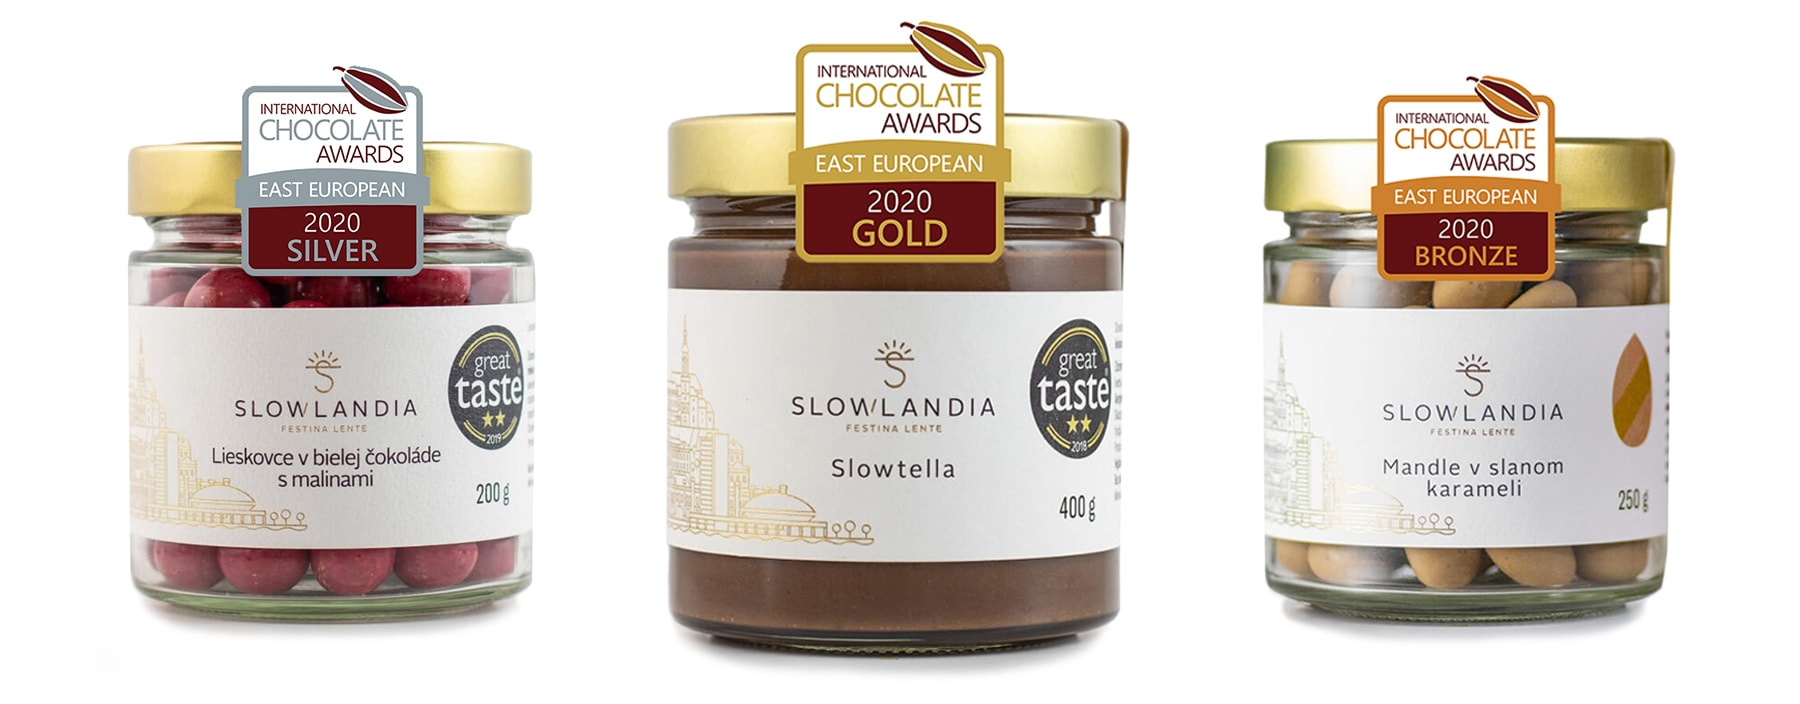 Víťazné produkty Slowlandia na International Chocolate Awards